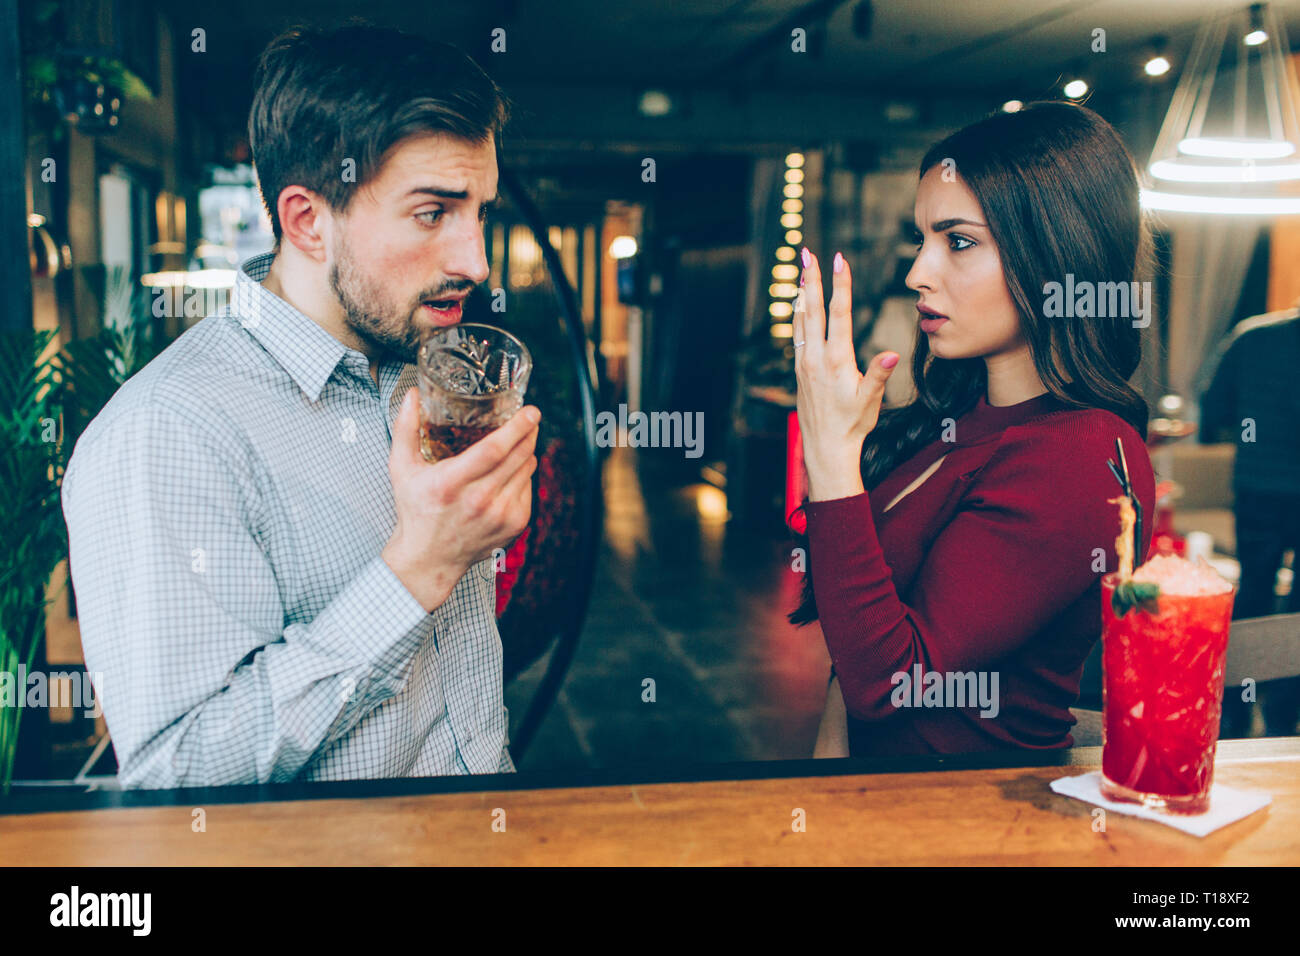 Angry young woman shows her hand with the ring on it to the man. He looks amazed. His face is full of different emotions Stock Photo